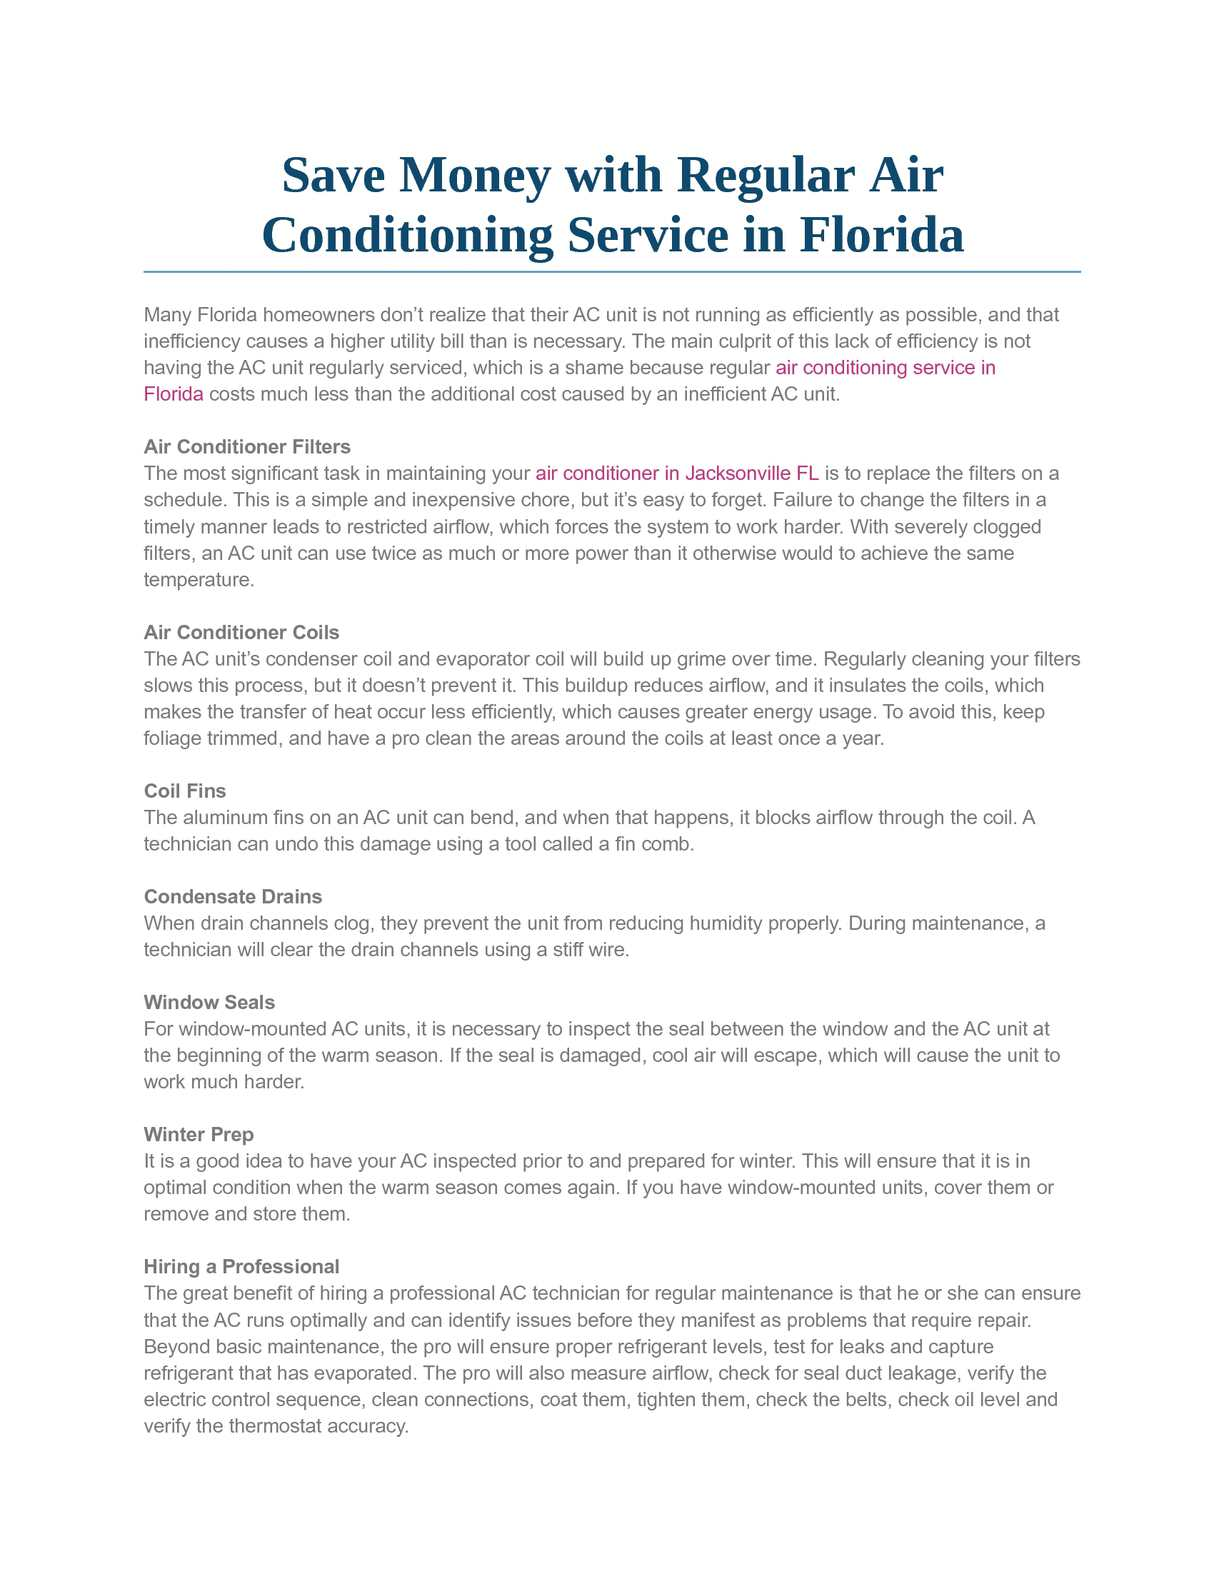 Calaméo - Save Money with Regular Air Conditioning Service